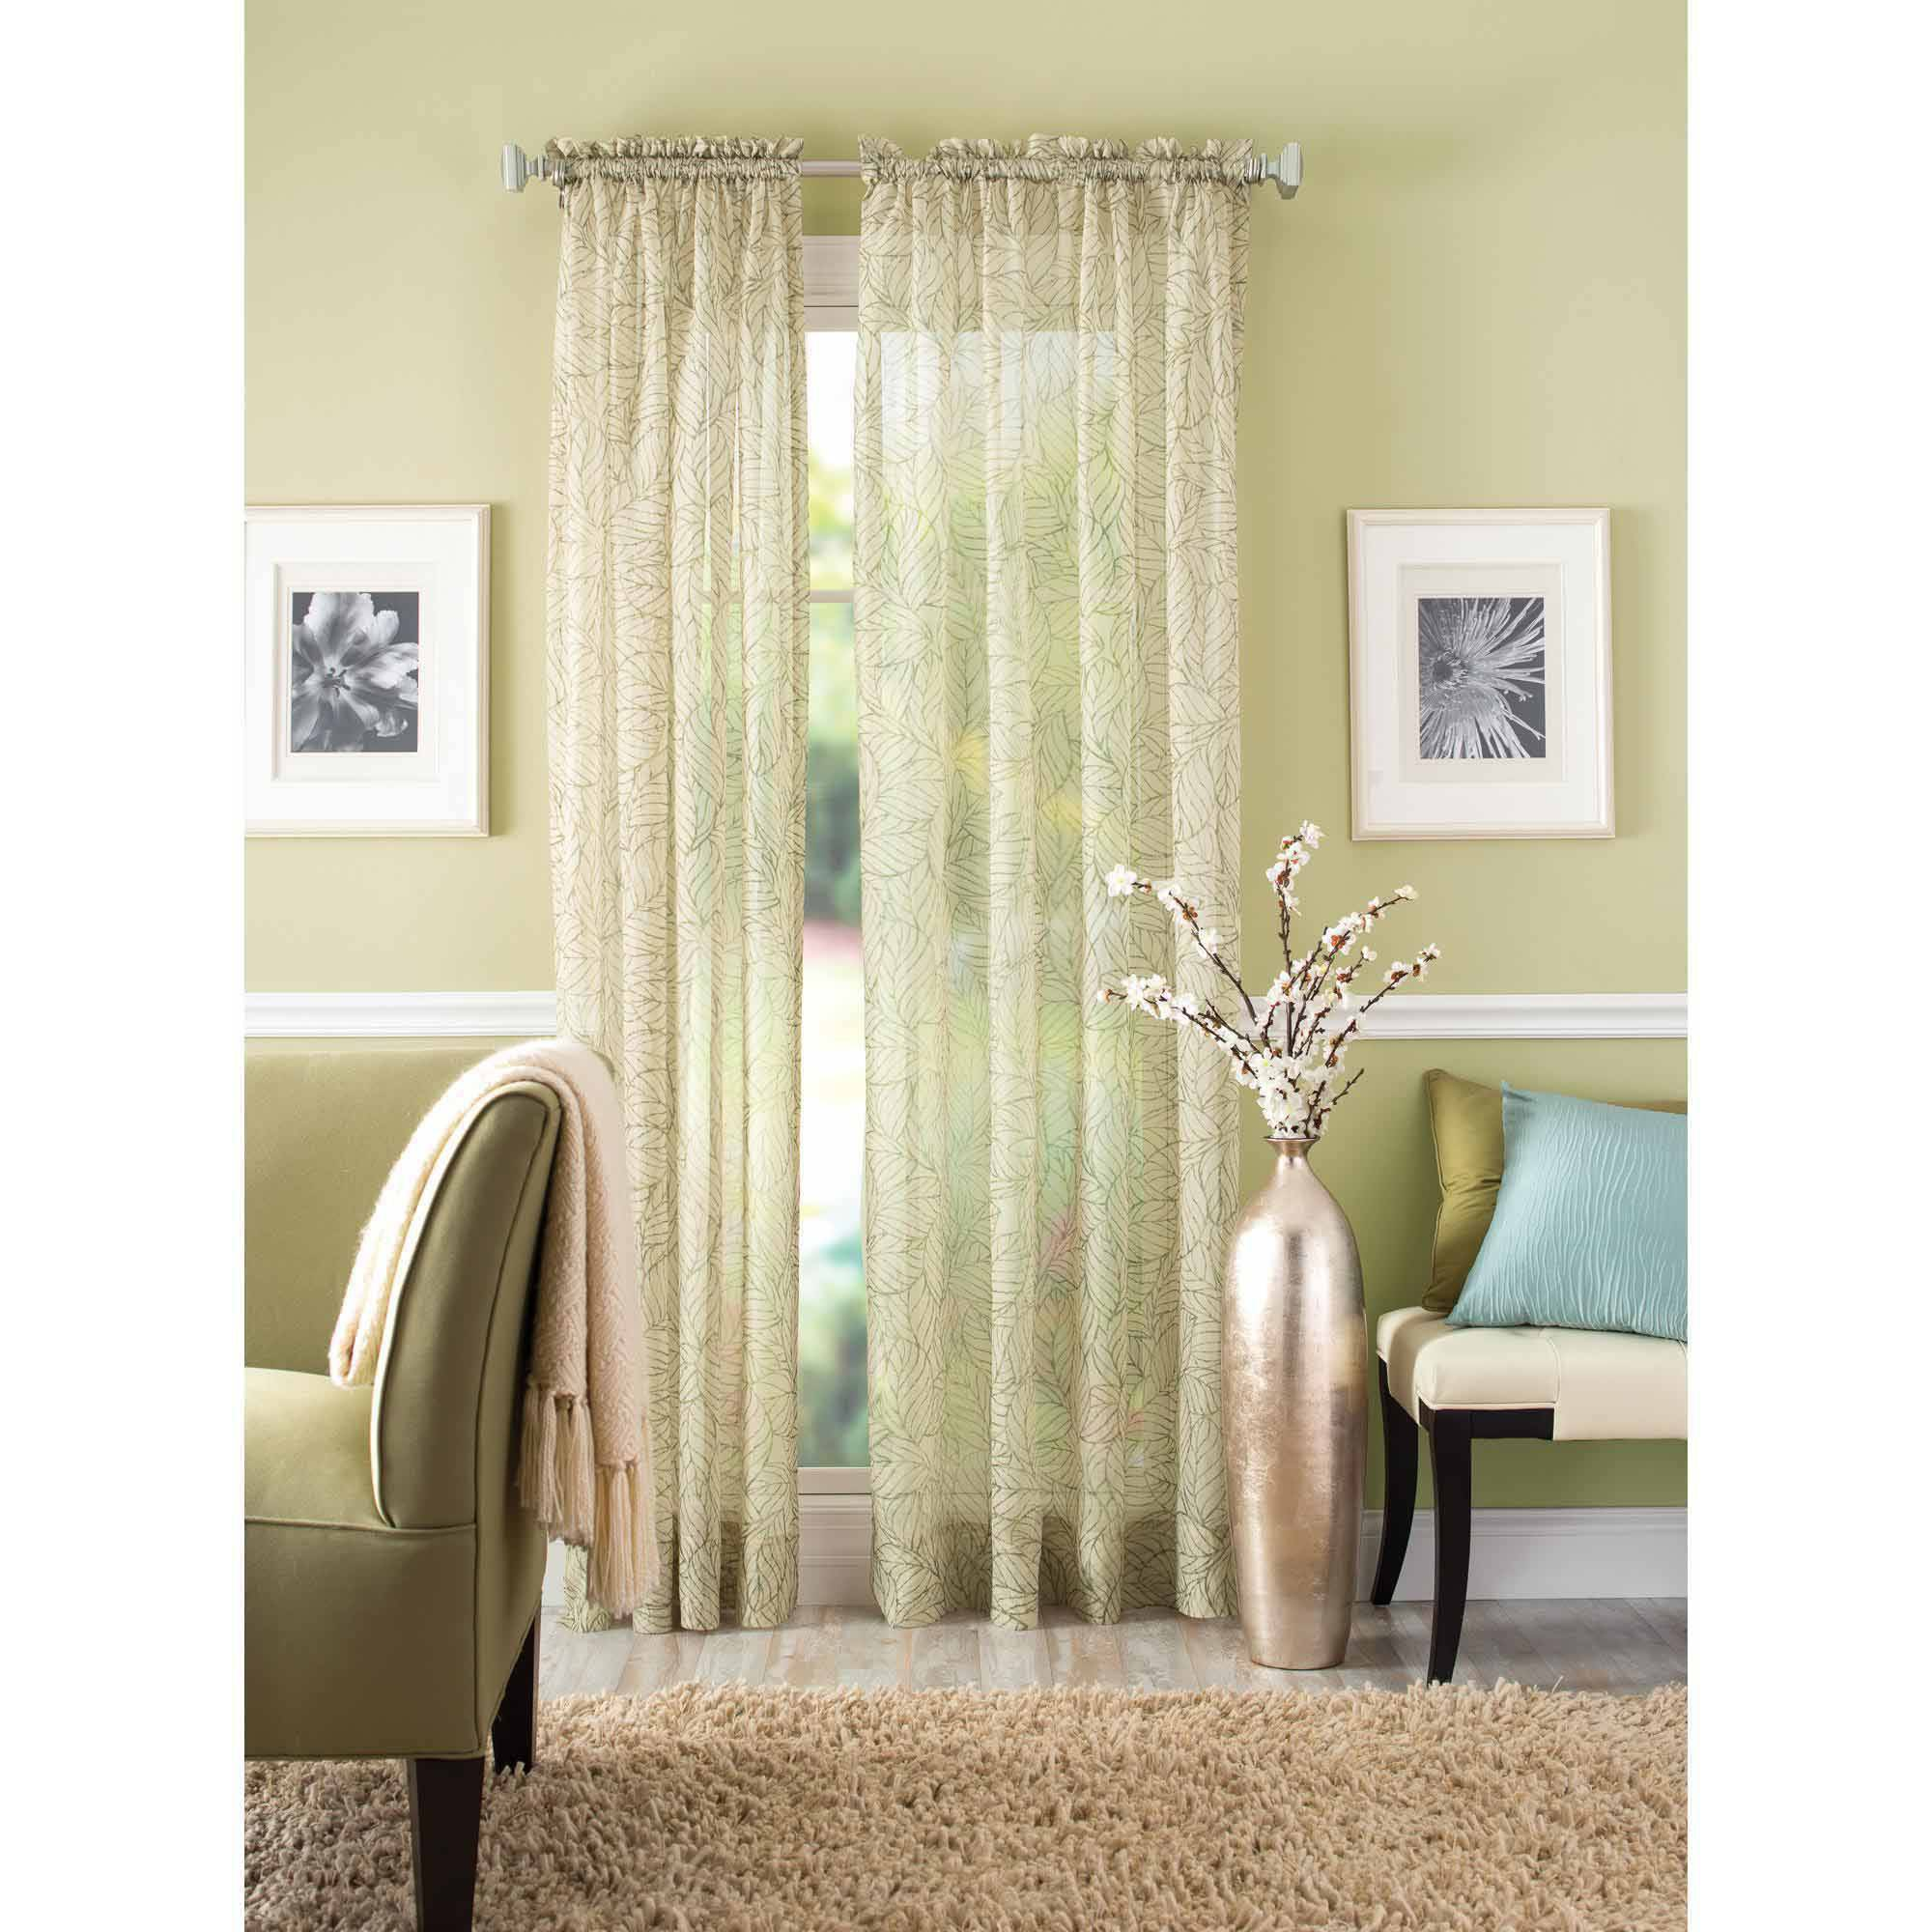 Better Homes and Gardens Crushed Leaf Window Curtain Panel by Maytex Mills